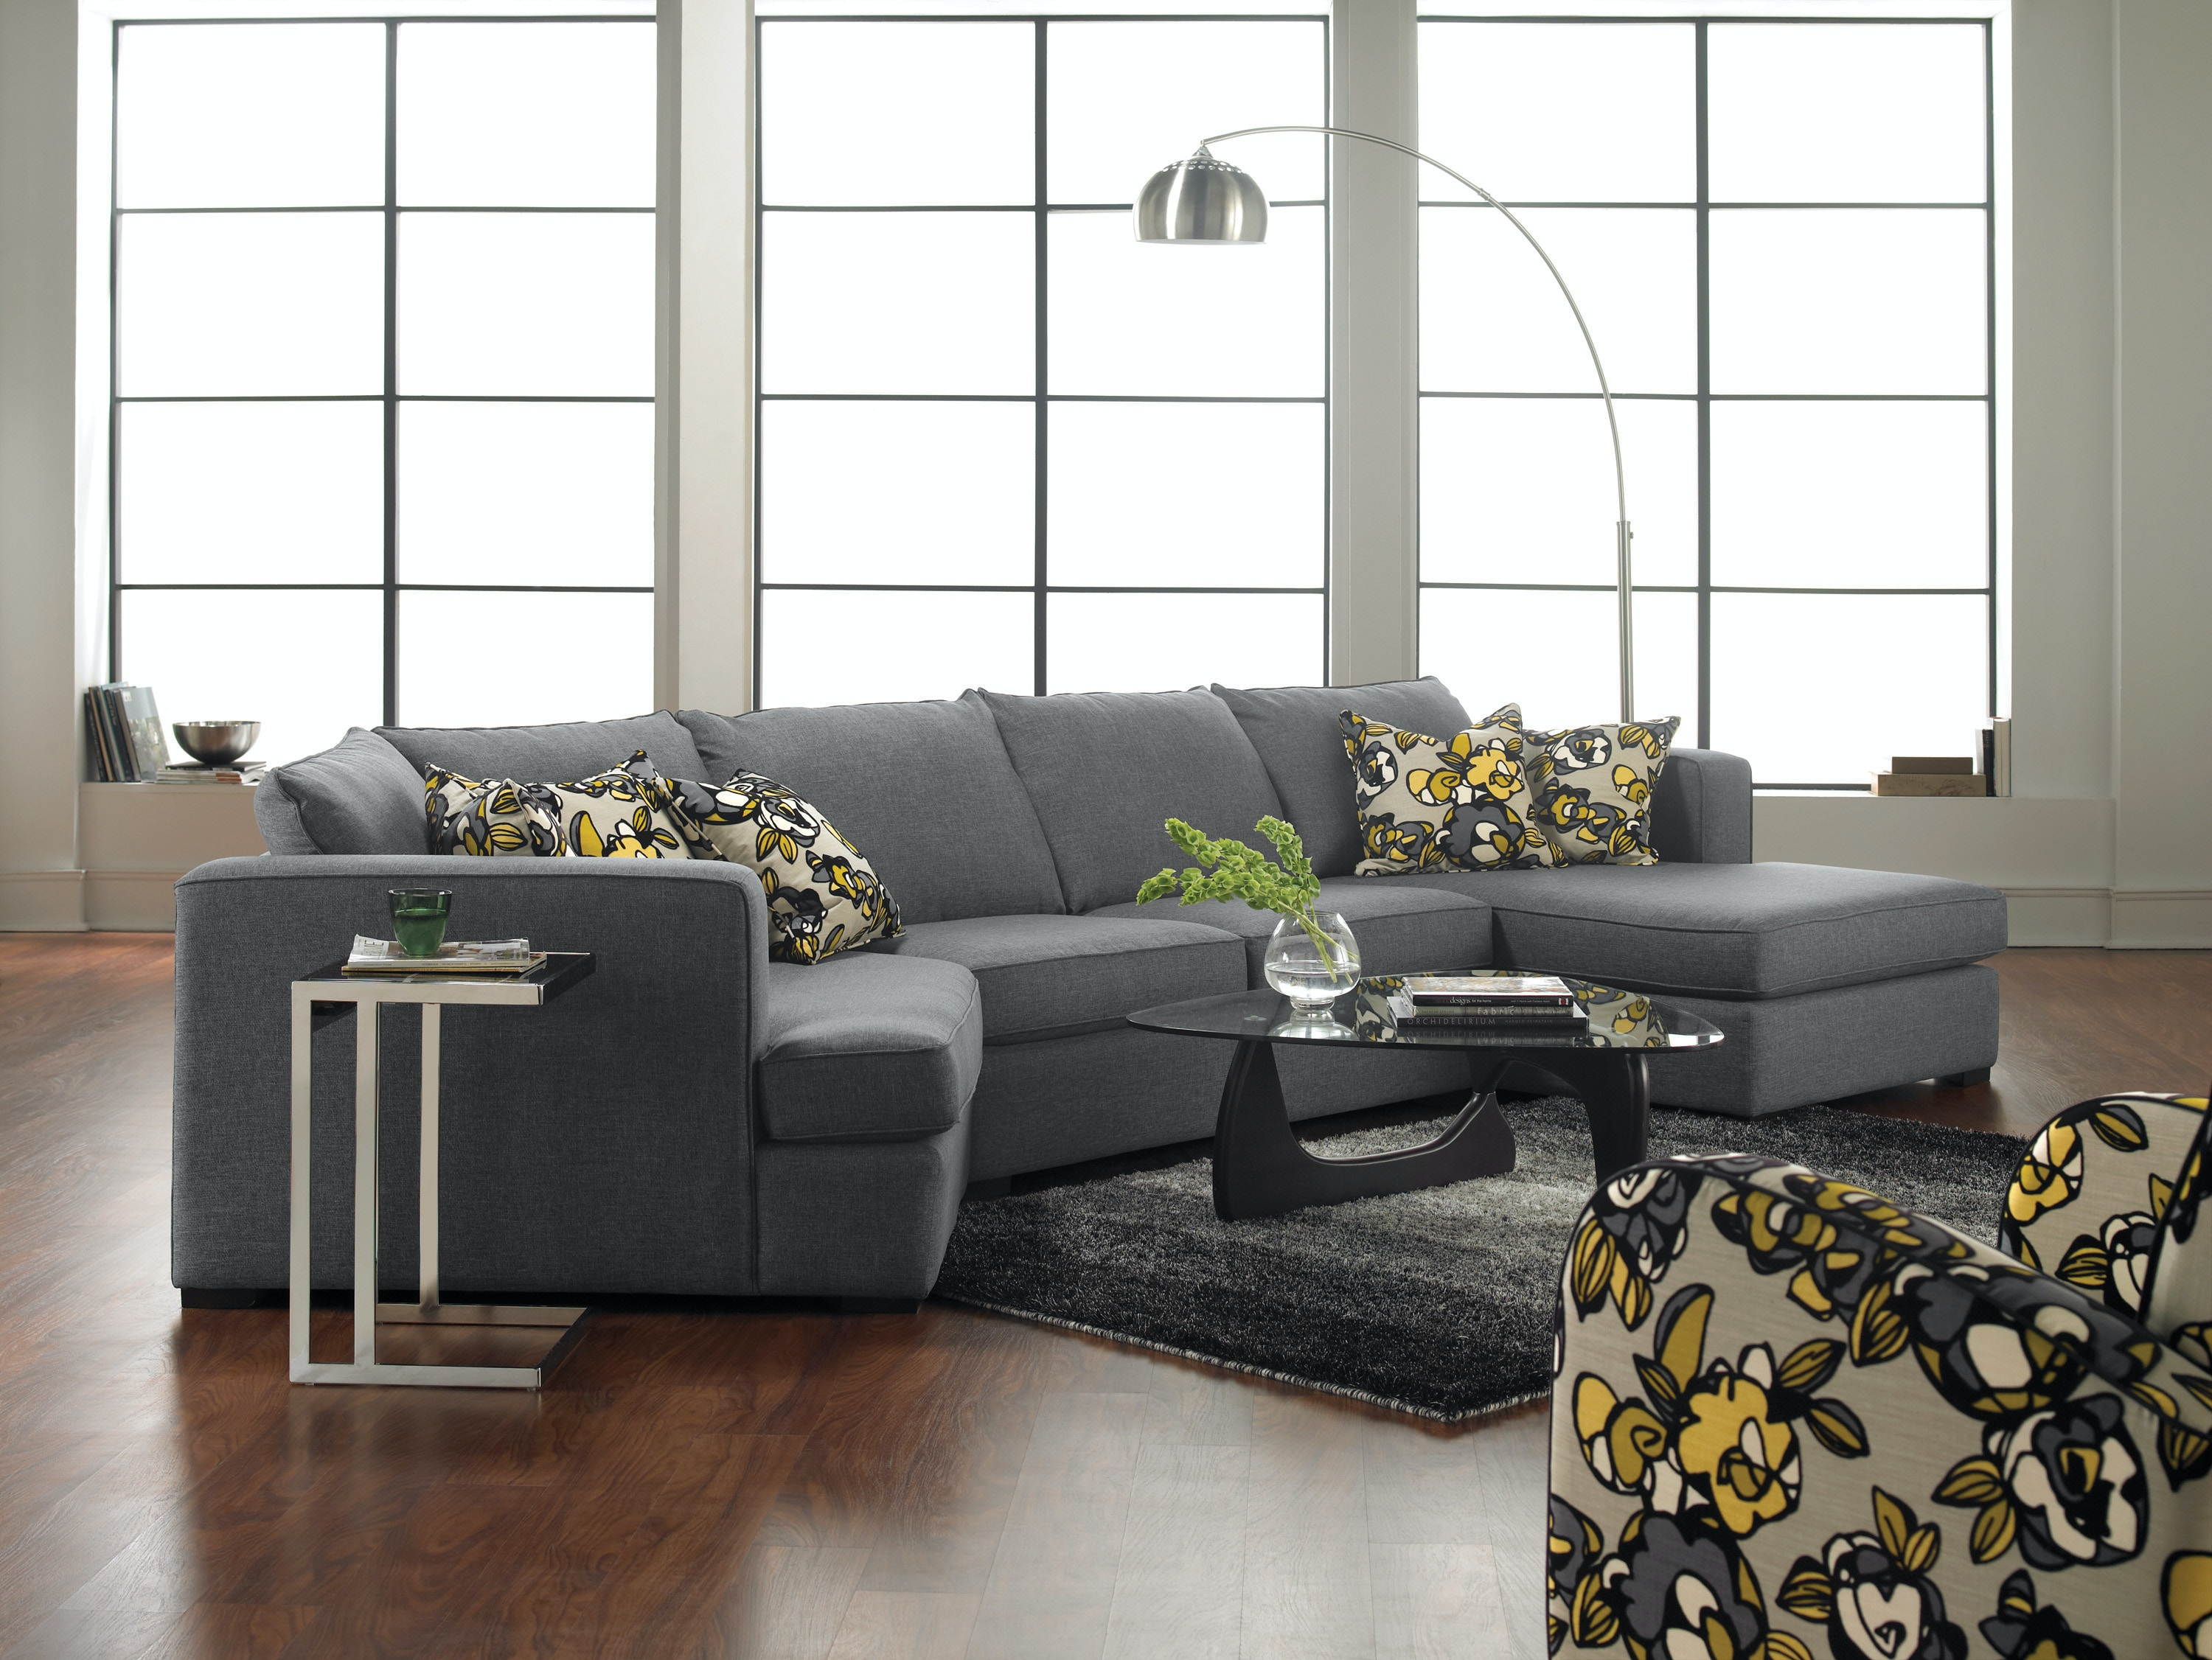 Home Furnishings Toronto Living Room Furniture Upper Room Home Furnishings